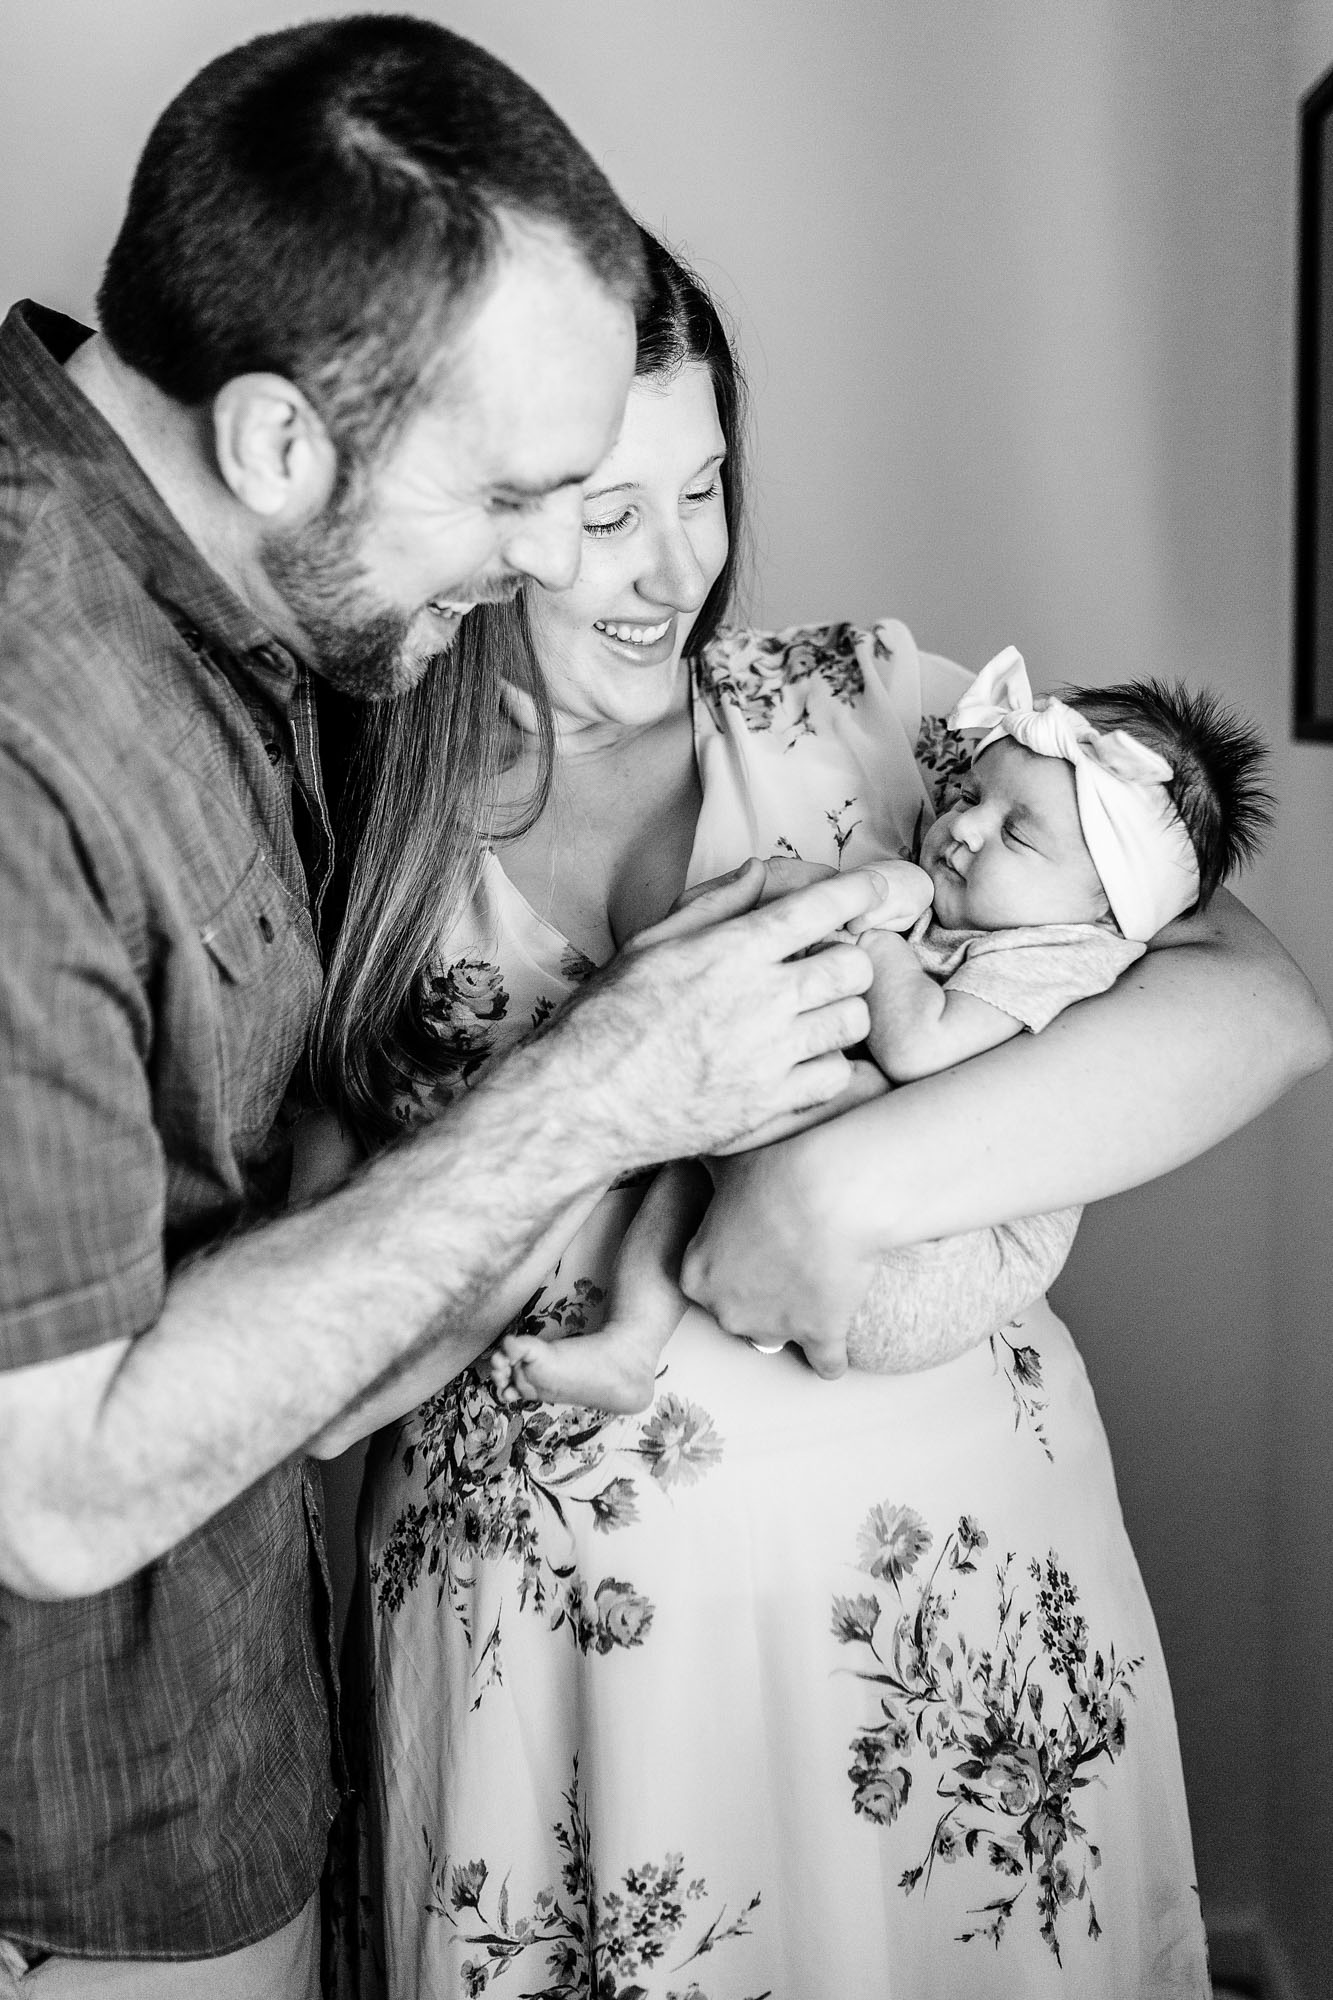 Parents lovingly hold and interact with their newborn baby during an in-home lifestyle photo shoot with photographer Amy Wright in Sacramento, California.